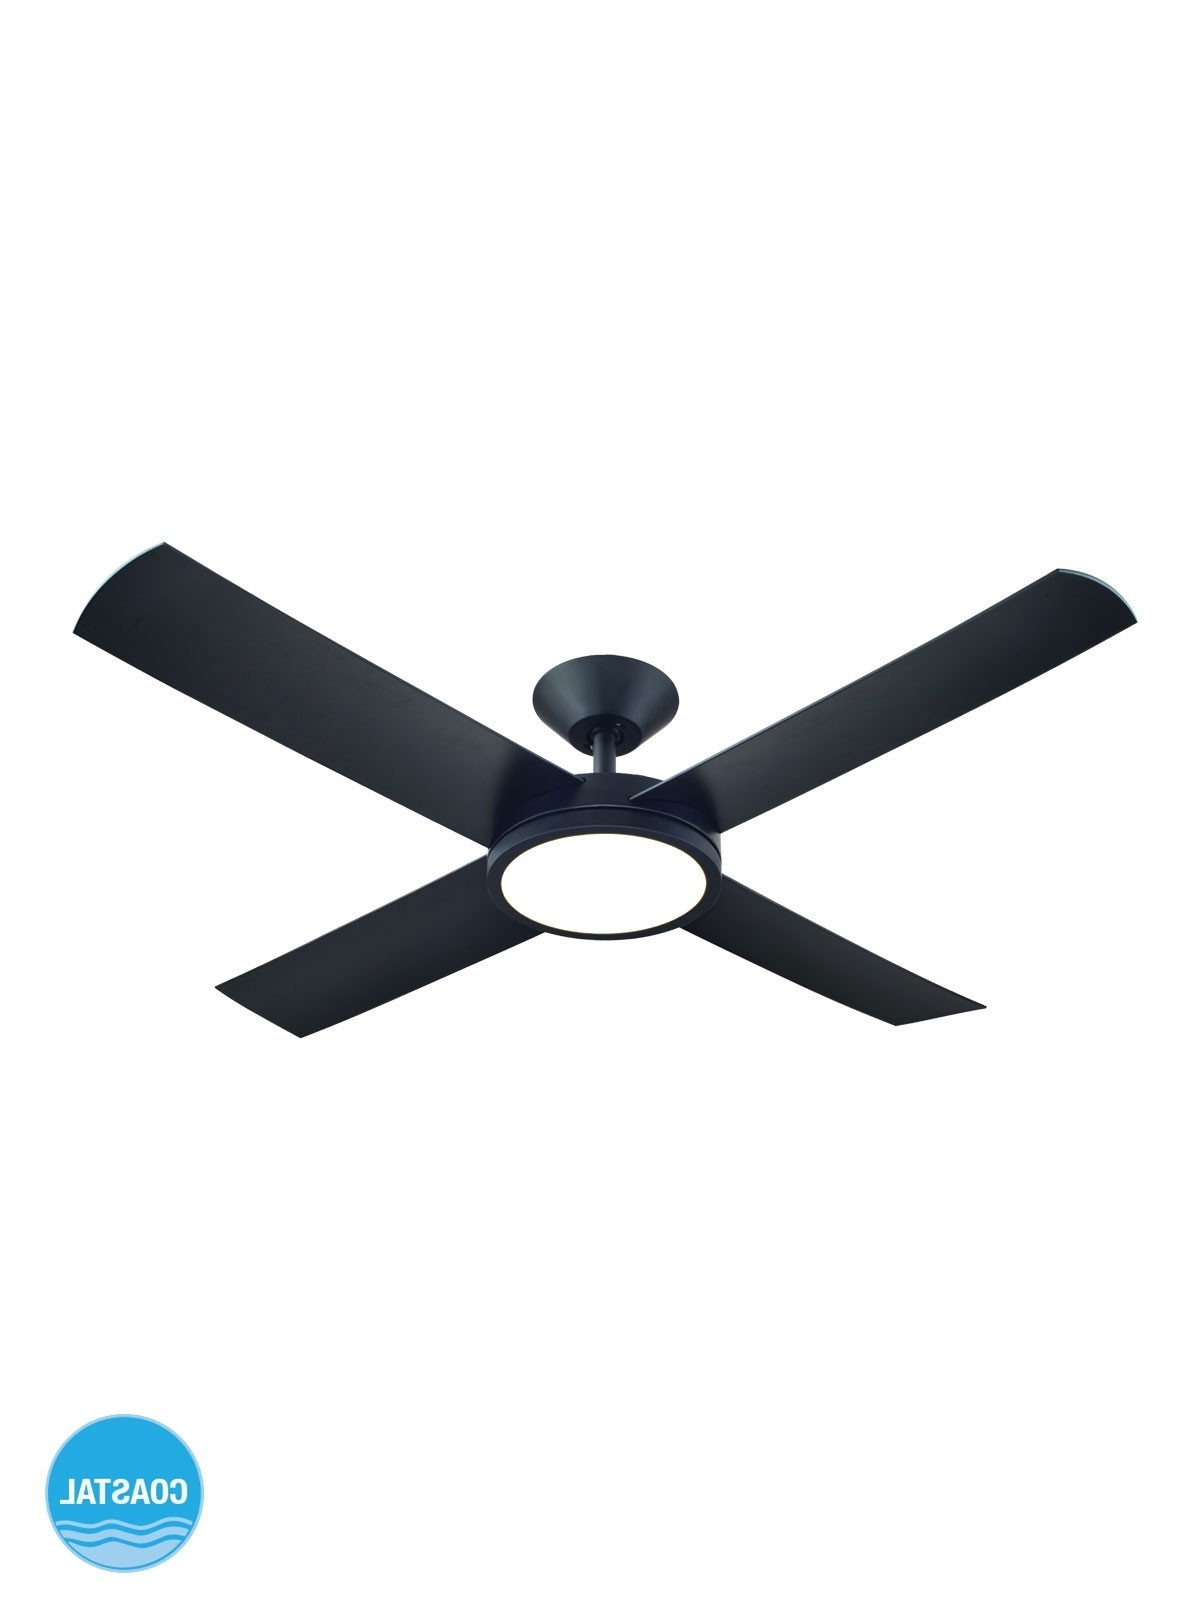 Famous Outdoor Ceiling Fan With Light Under $100 Throughout Aero 132Cm Fan With Led Light In Black (View 4 of 20)